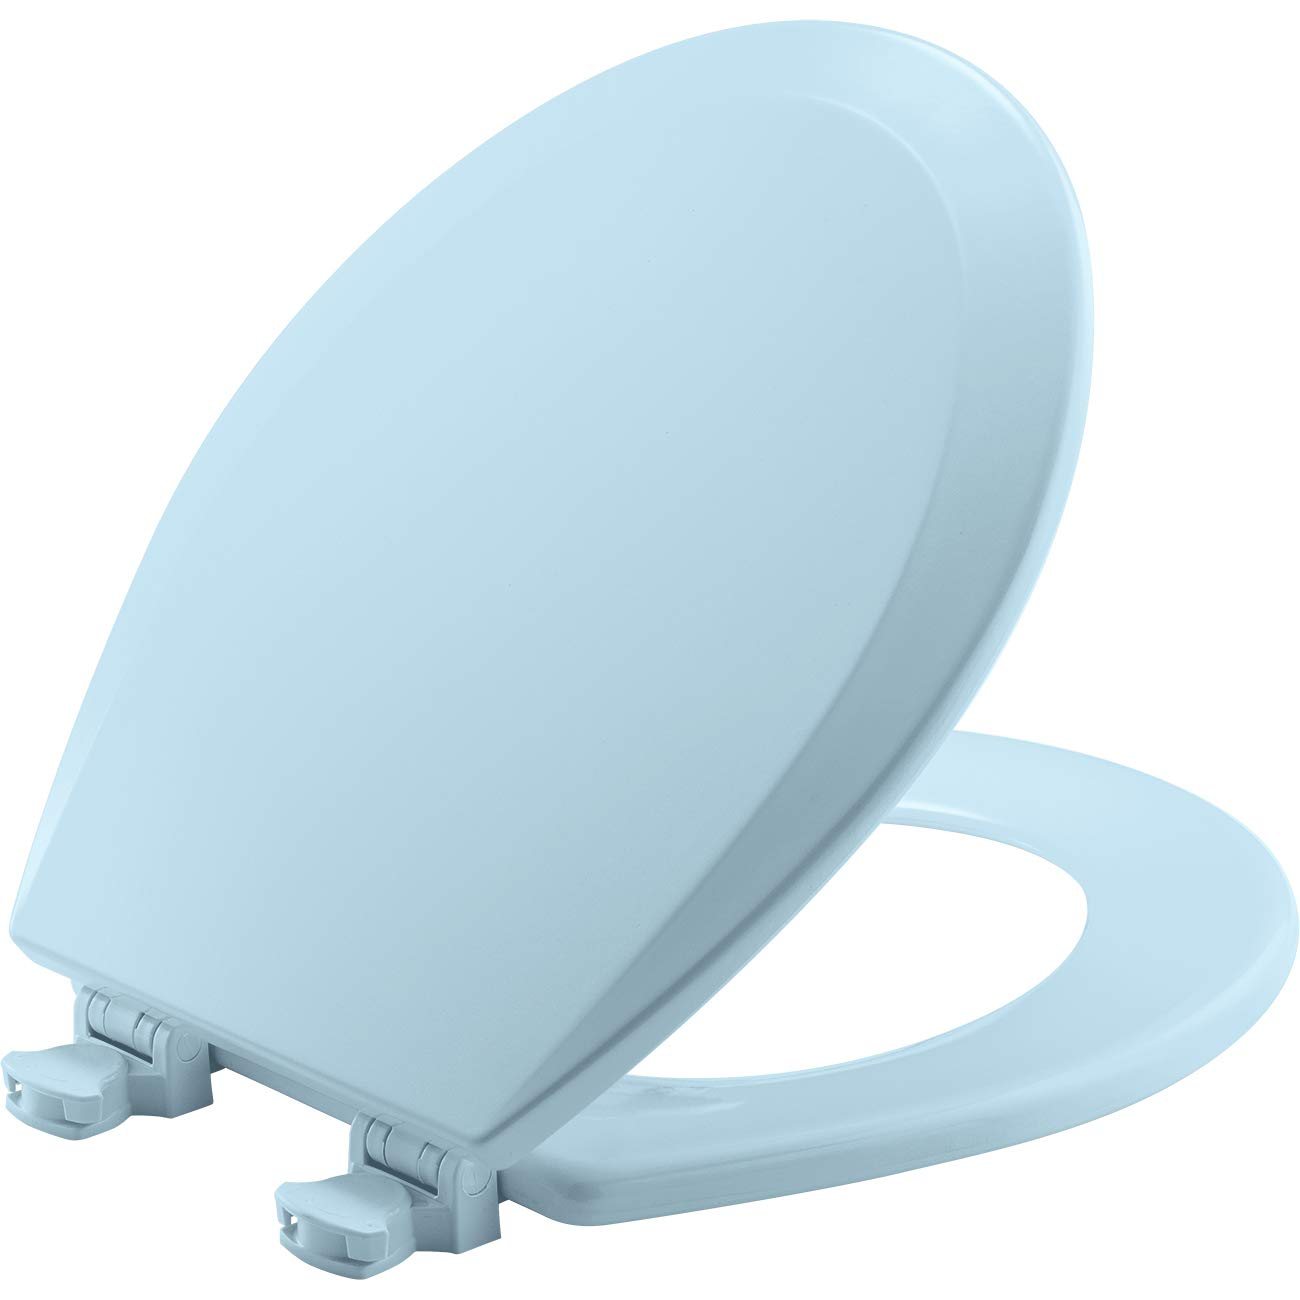 Admirable Bemis 500Ec 464 Toilet Seat With Easy Clean Change Hinges Round Durable Enameled Wood Dresden Blue Pdpeps Interior Chair Design Pdpepsorg